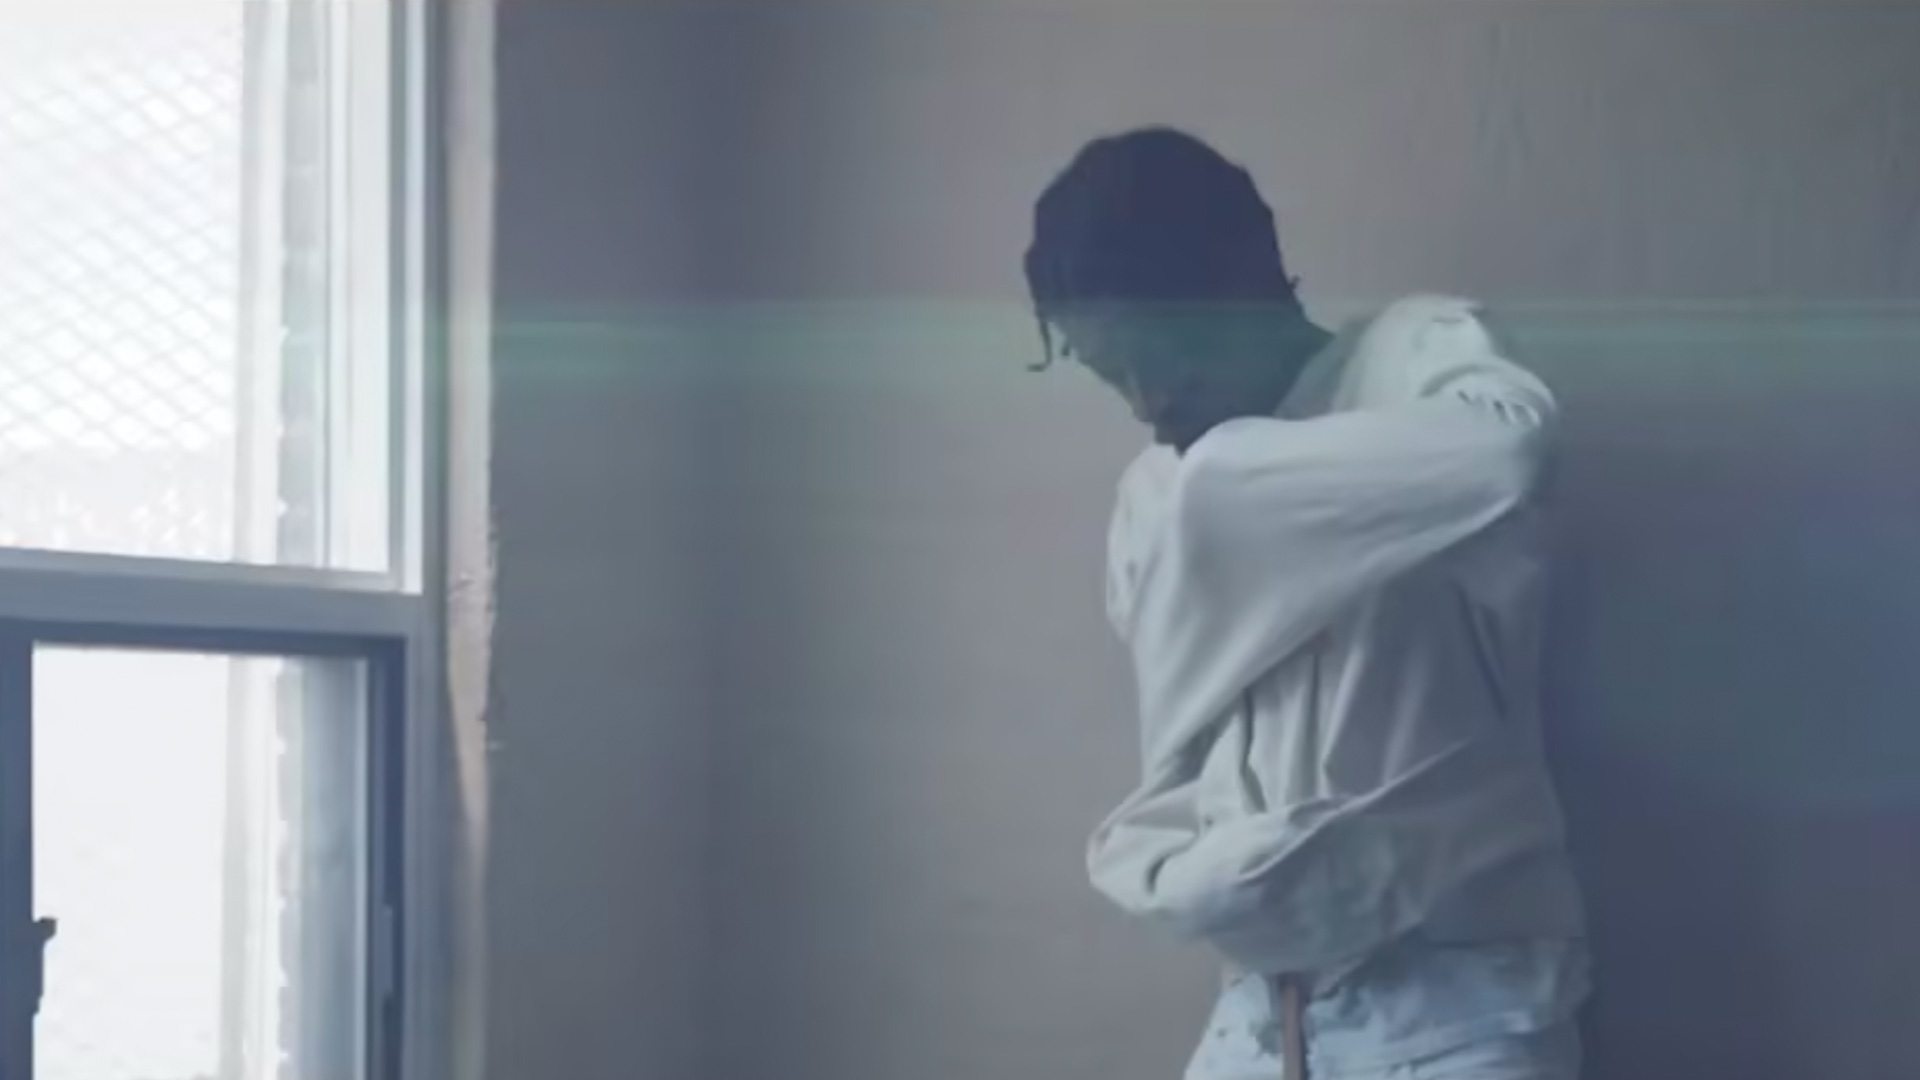 Man in straight jacket inside a building